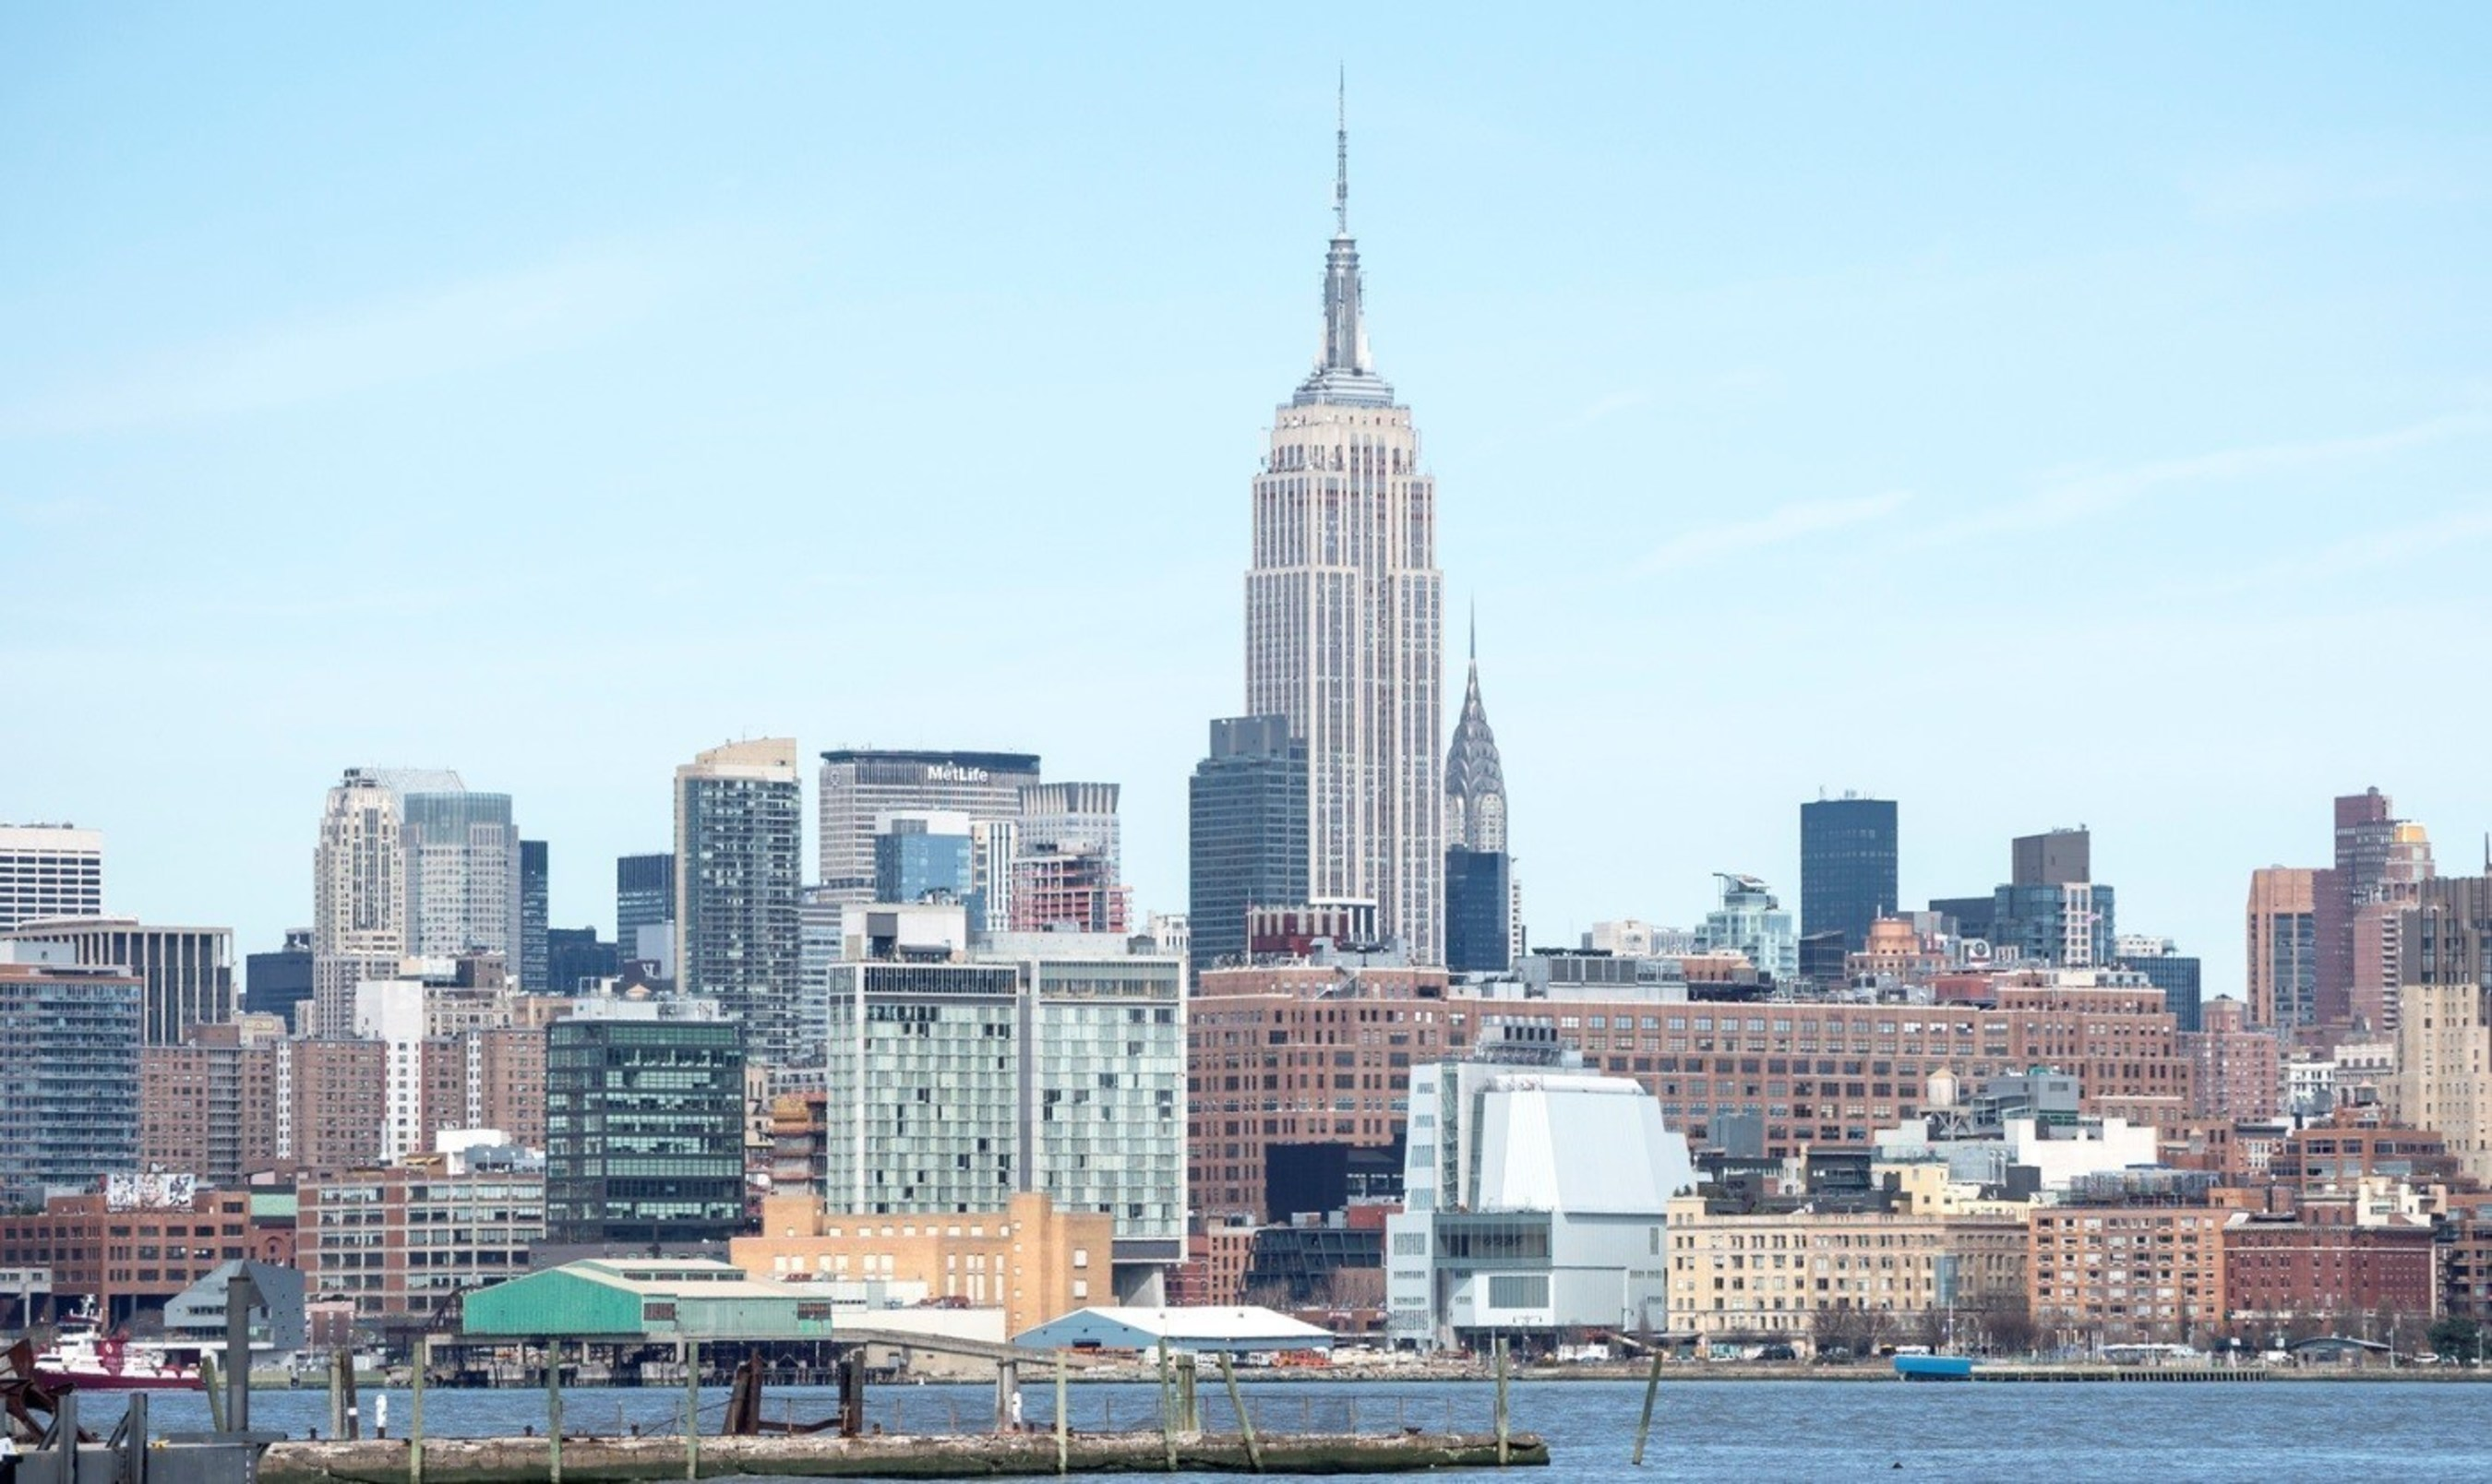 Photo of the new Whitney Museum of American Art (white building in center foreground) and the Empire State Building by Timothy Schenck